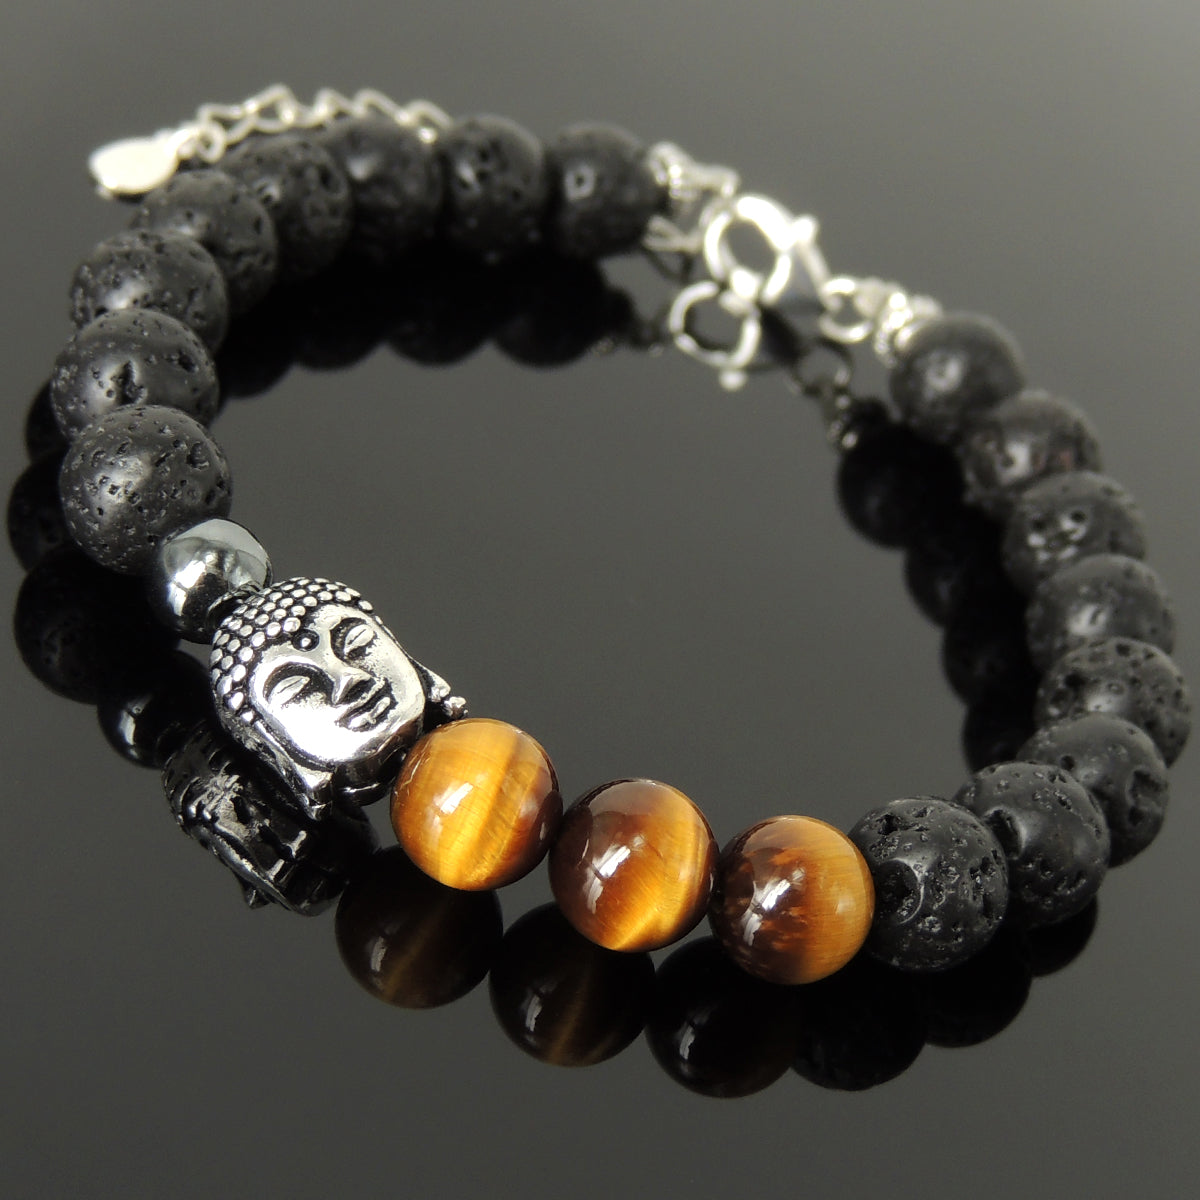 Grade 3A Brown Tiger Eye, Lava Rock, & Hematite Healing Stone Bracelet with S925 Sterling Silver Guanyin Buddha, Chain, & Clasp - Handmade by Gem & Silver BR1394